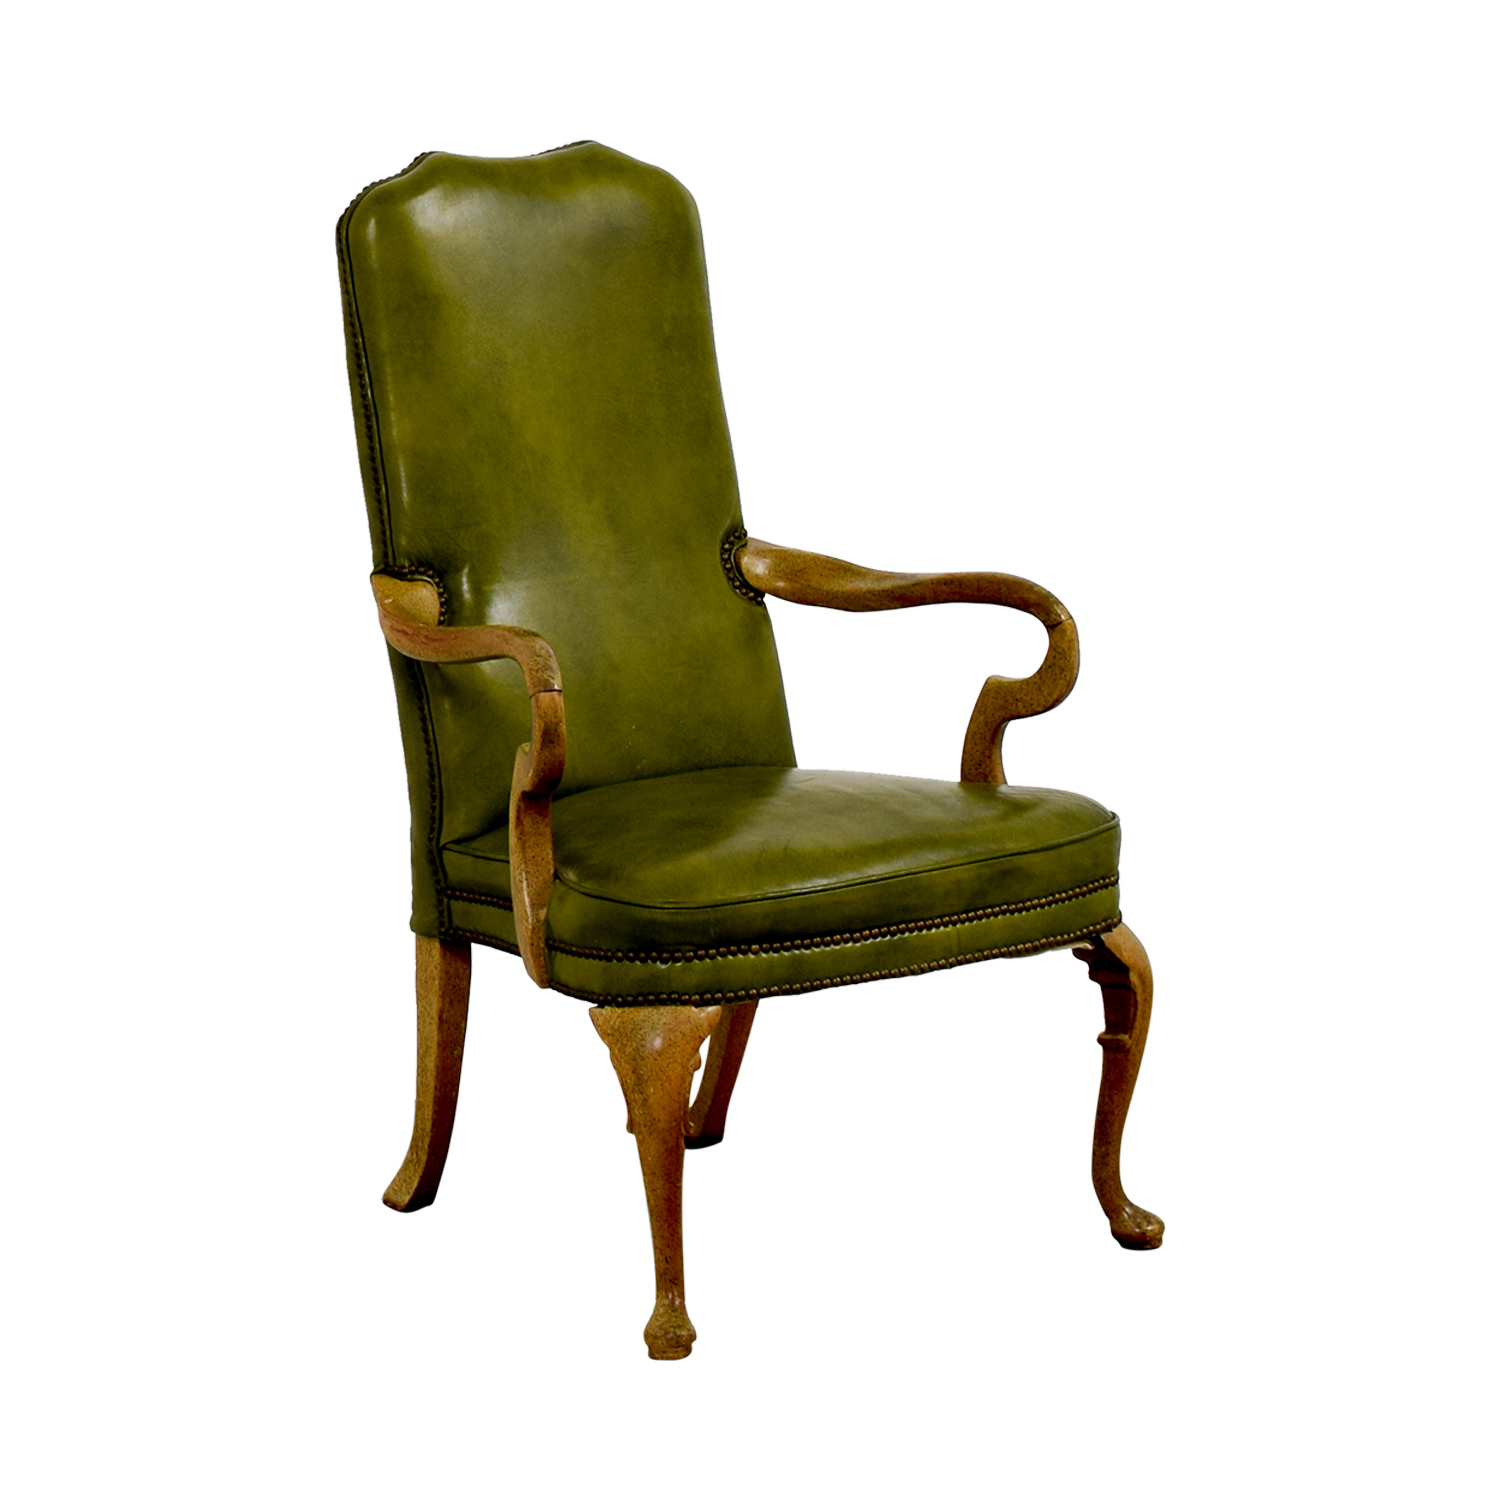 buy Green Leather Studded Regency Chair Chairs